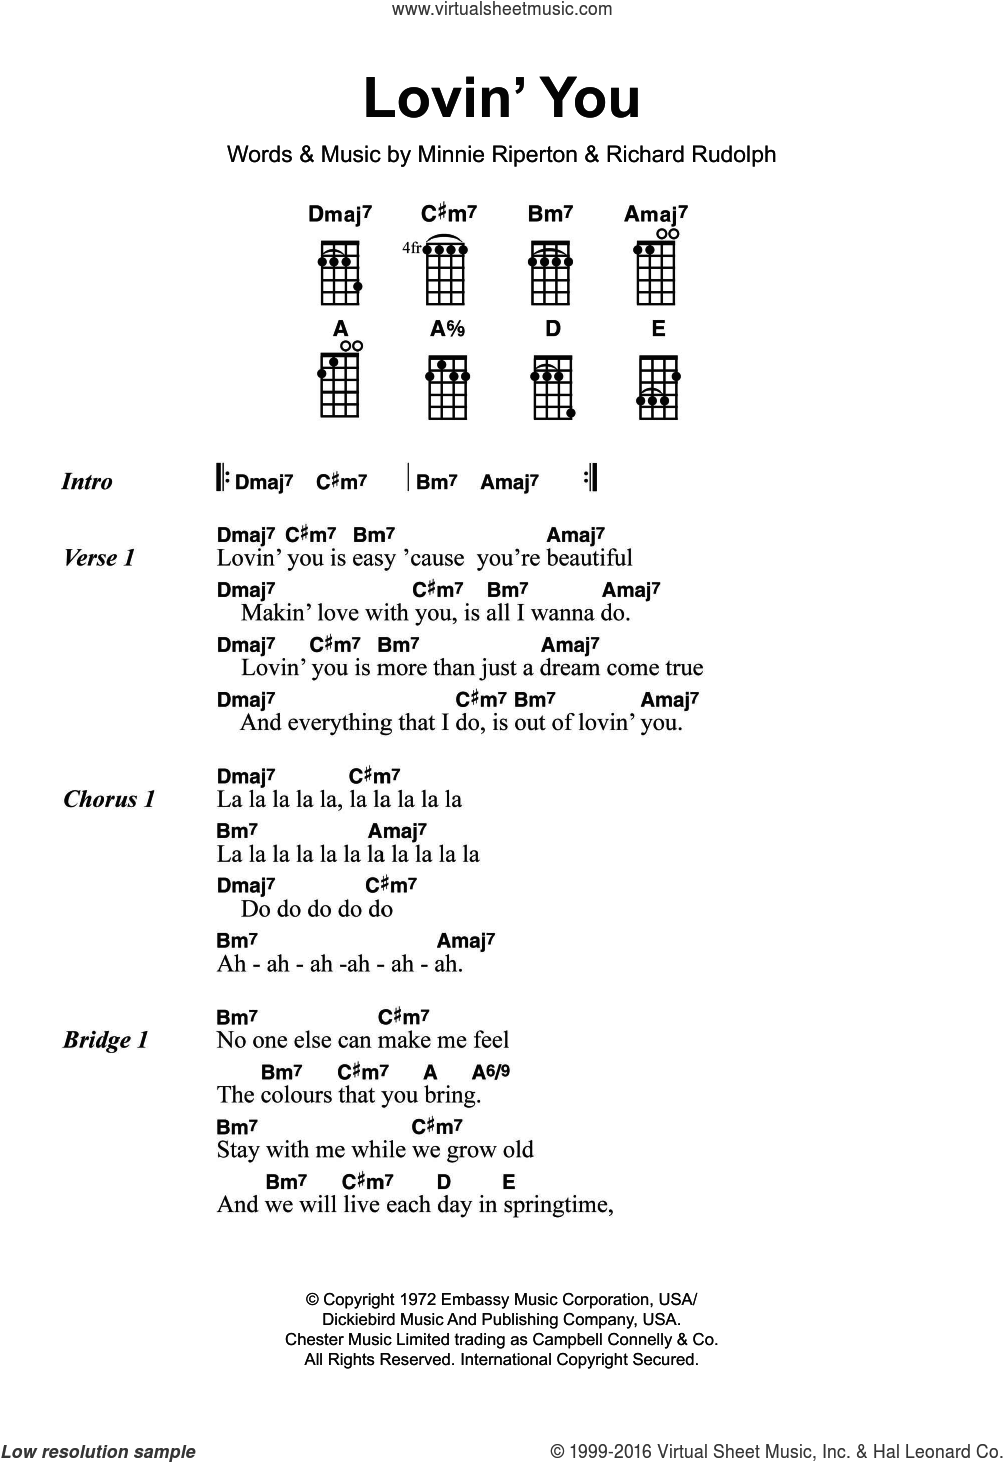 Lovin' You sheet music for ukulele by Minnie Riperton and Richard Rudolph, intermediate skill level